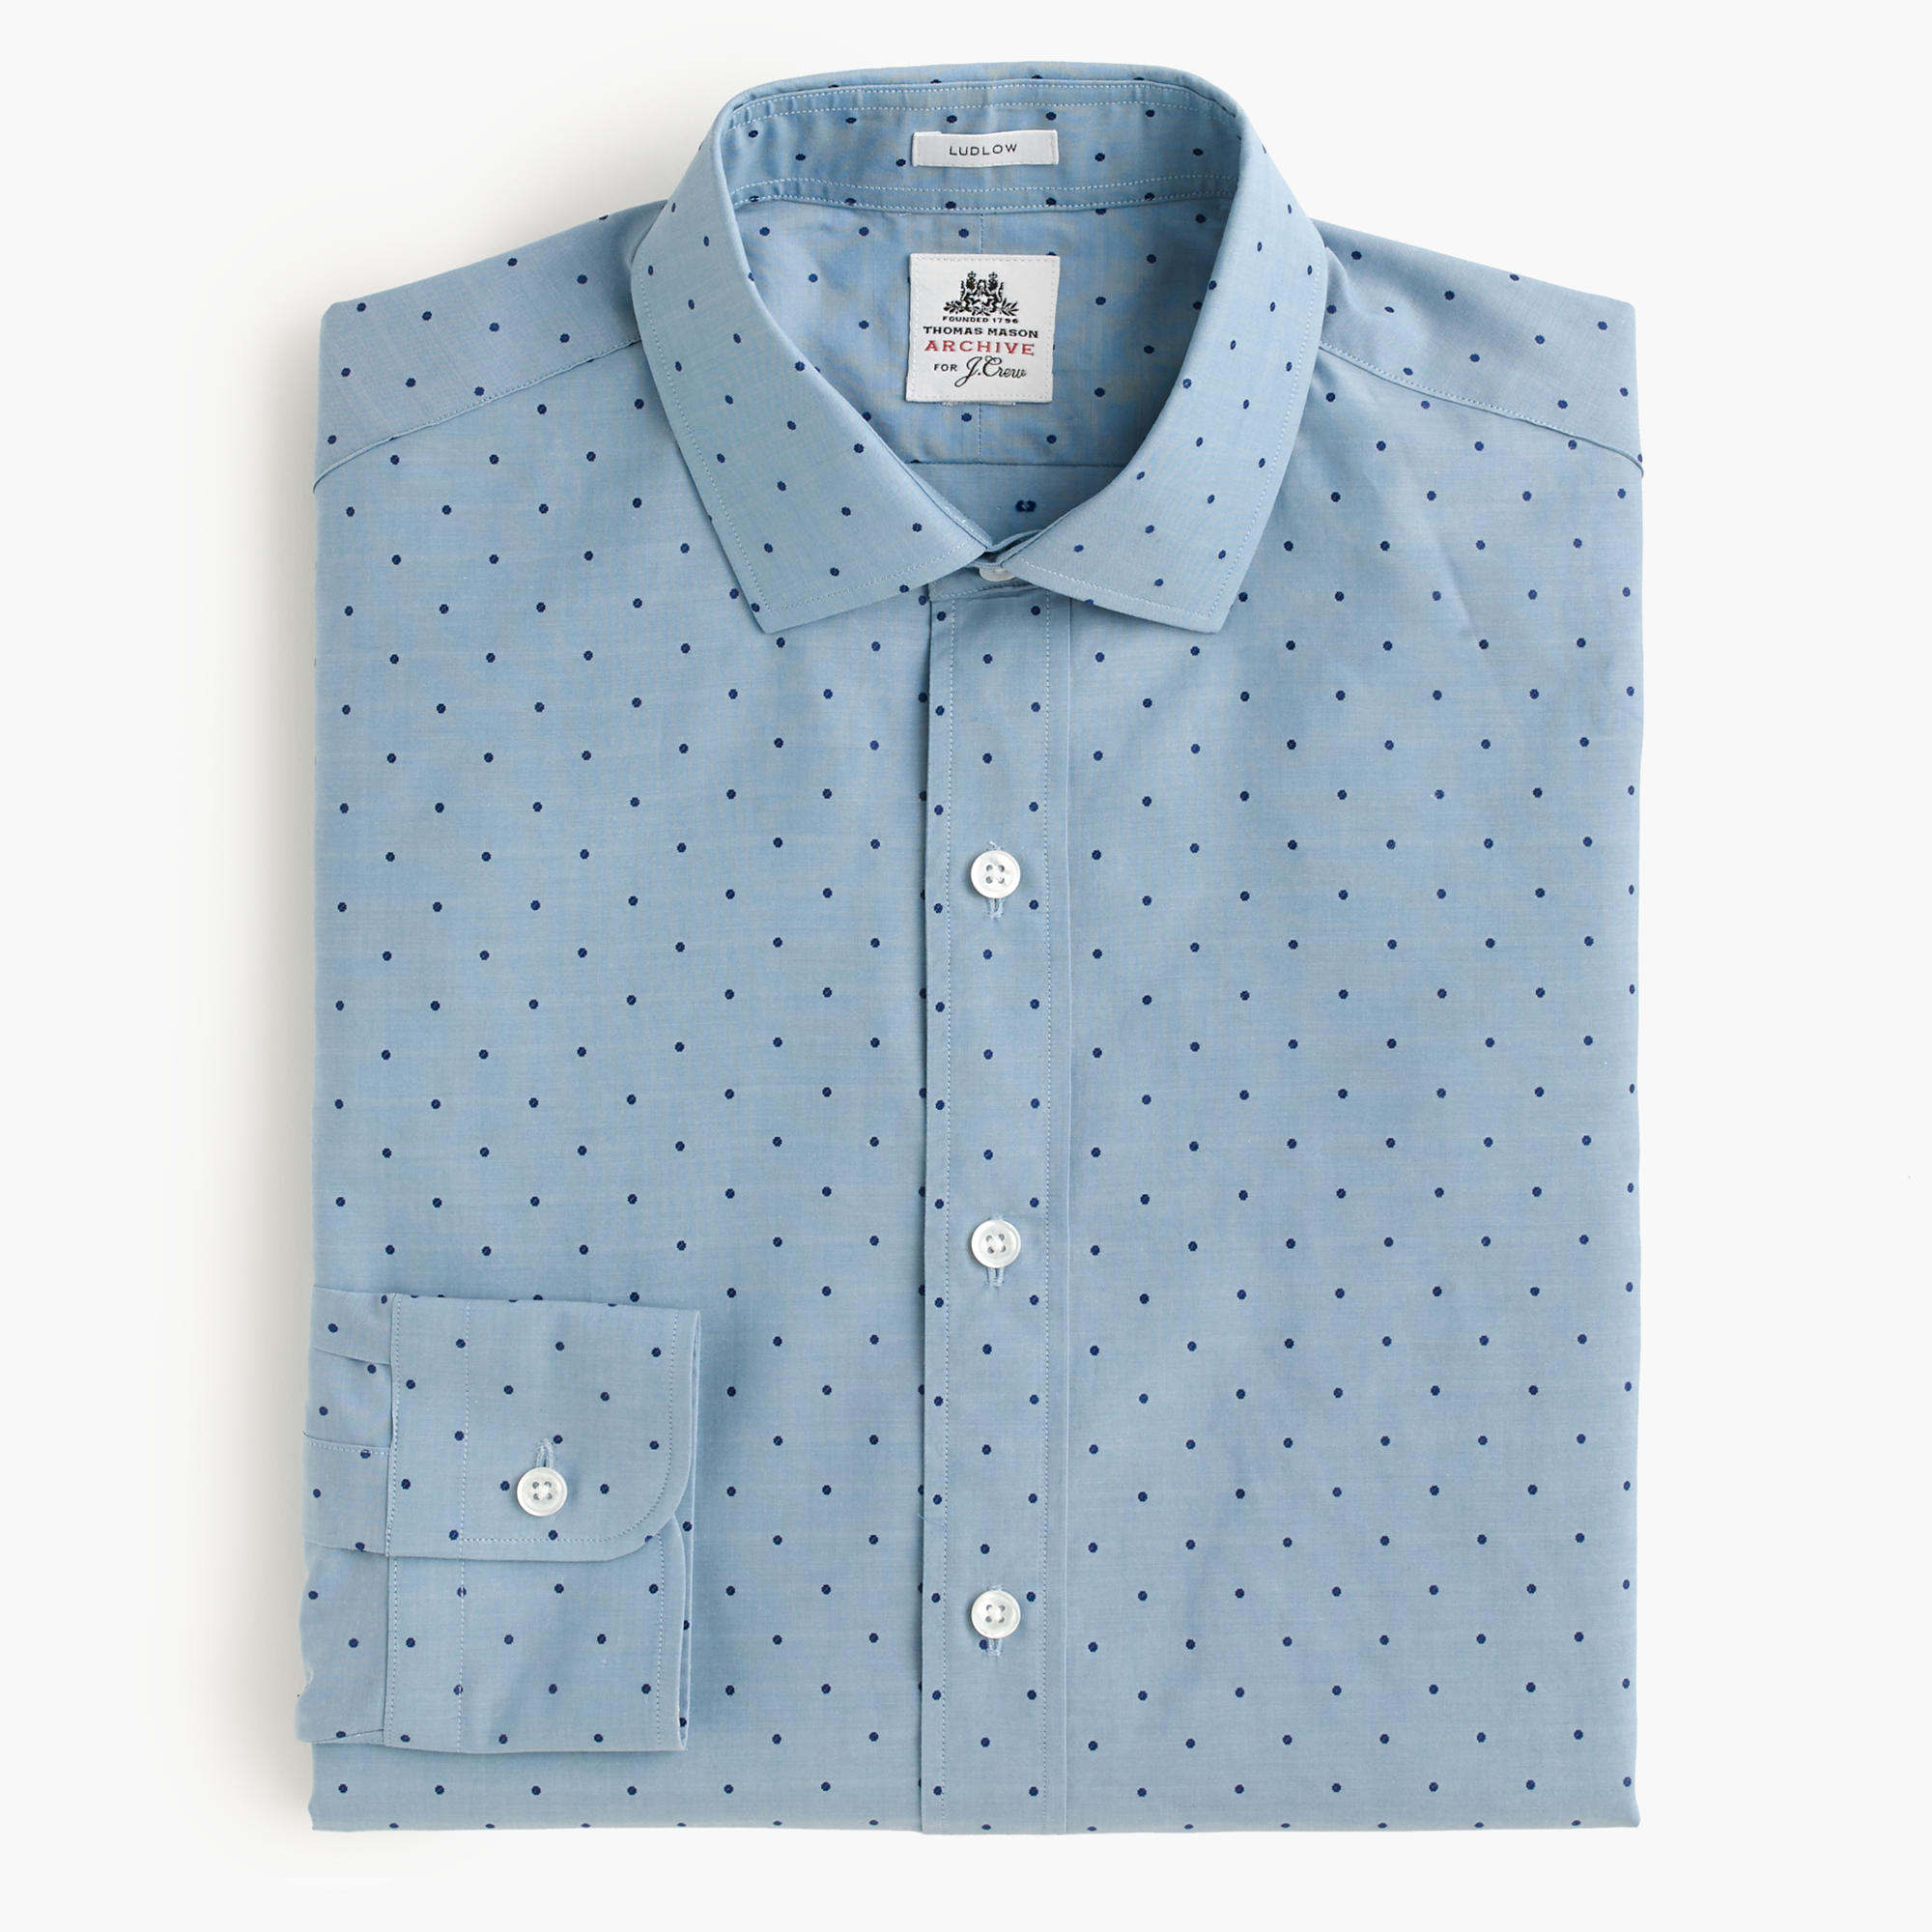 Thomas Mason Archive For J Crew Ludlow Shirt In Woven